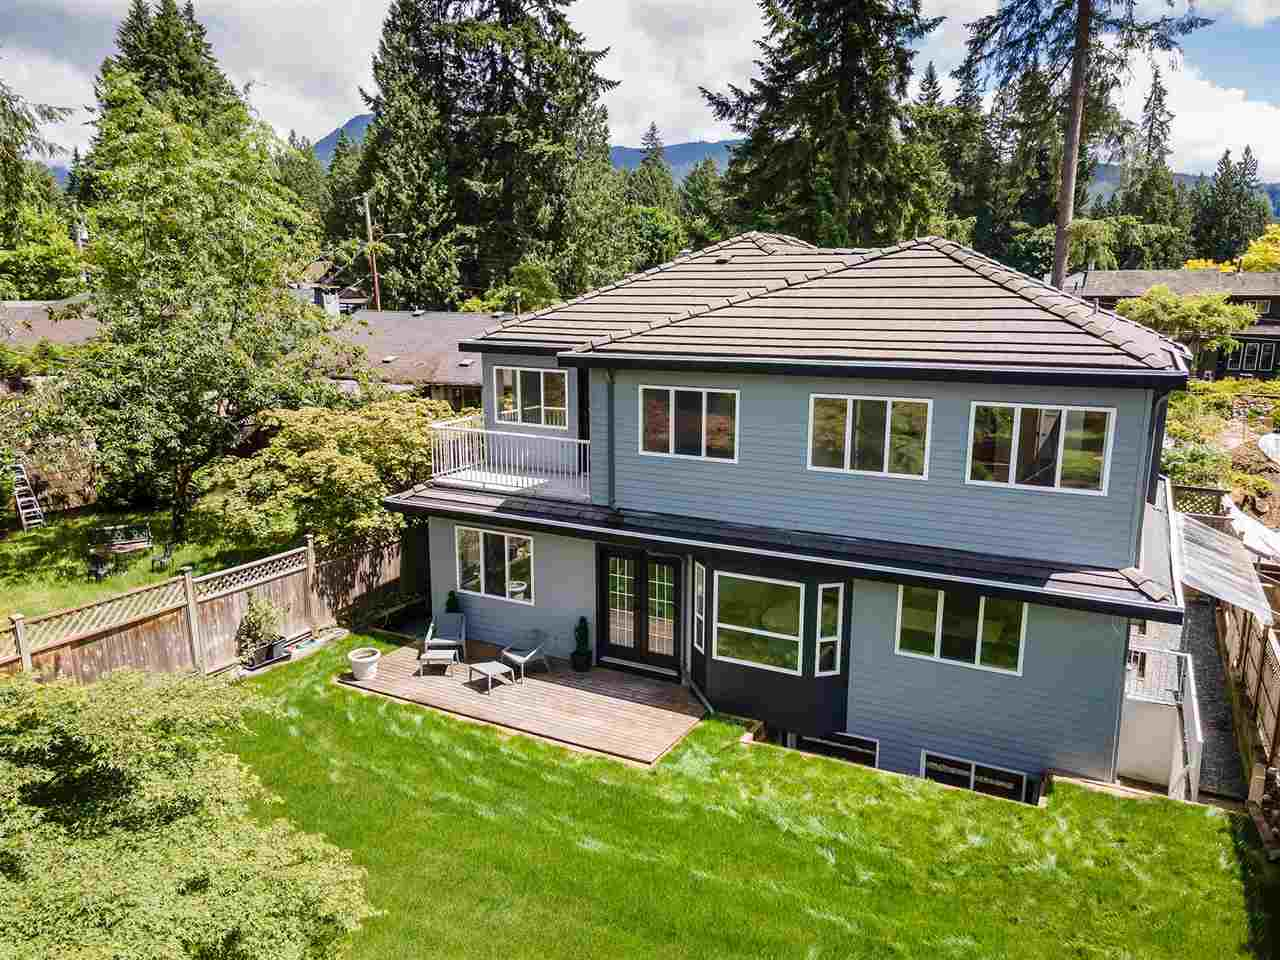 3629 MCEWEN AVENUE - Lynn Valley House/Single Family for sale, 7 Bedrooms (R2590986) - #28